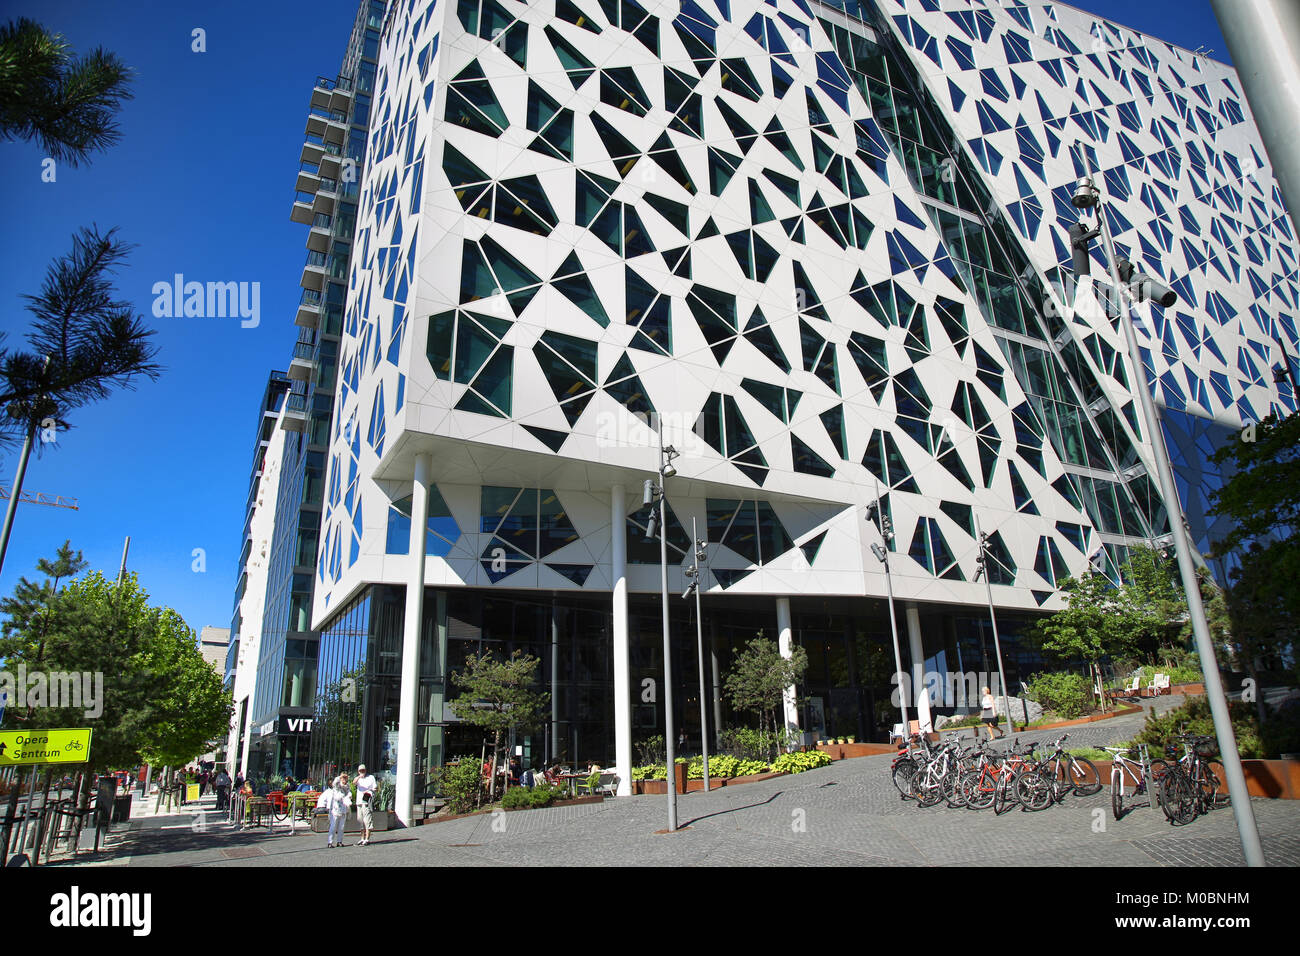 OSLO, NORWAY – AUGUST 17, 2016: Exterior of a new apartment blocks 'Barcode buildings' and walkway on Dronning - Stock Image